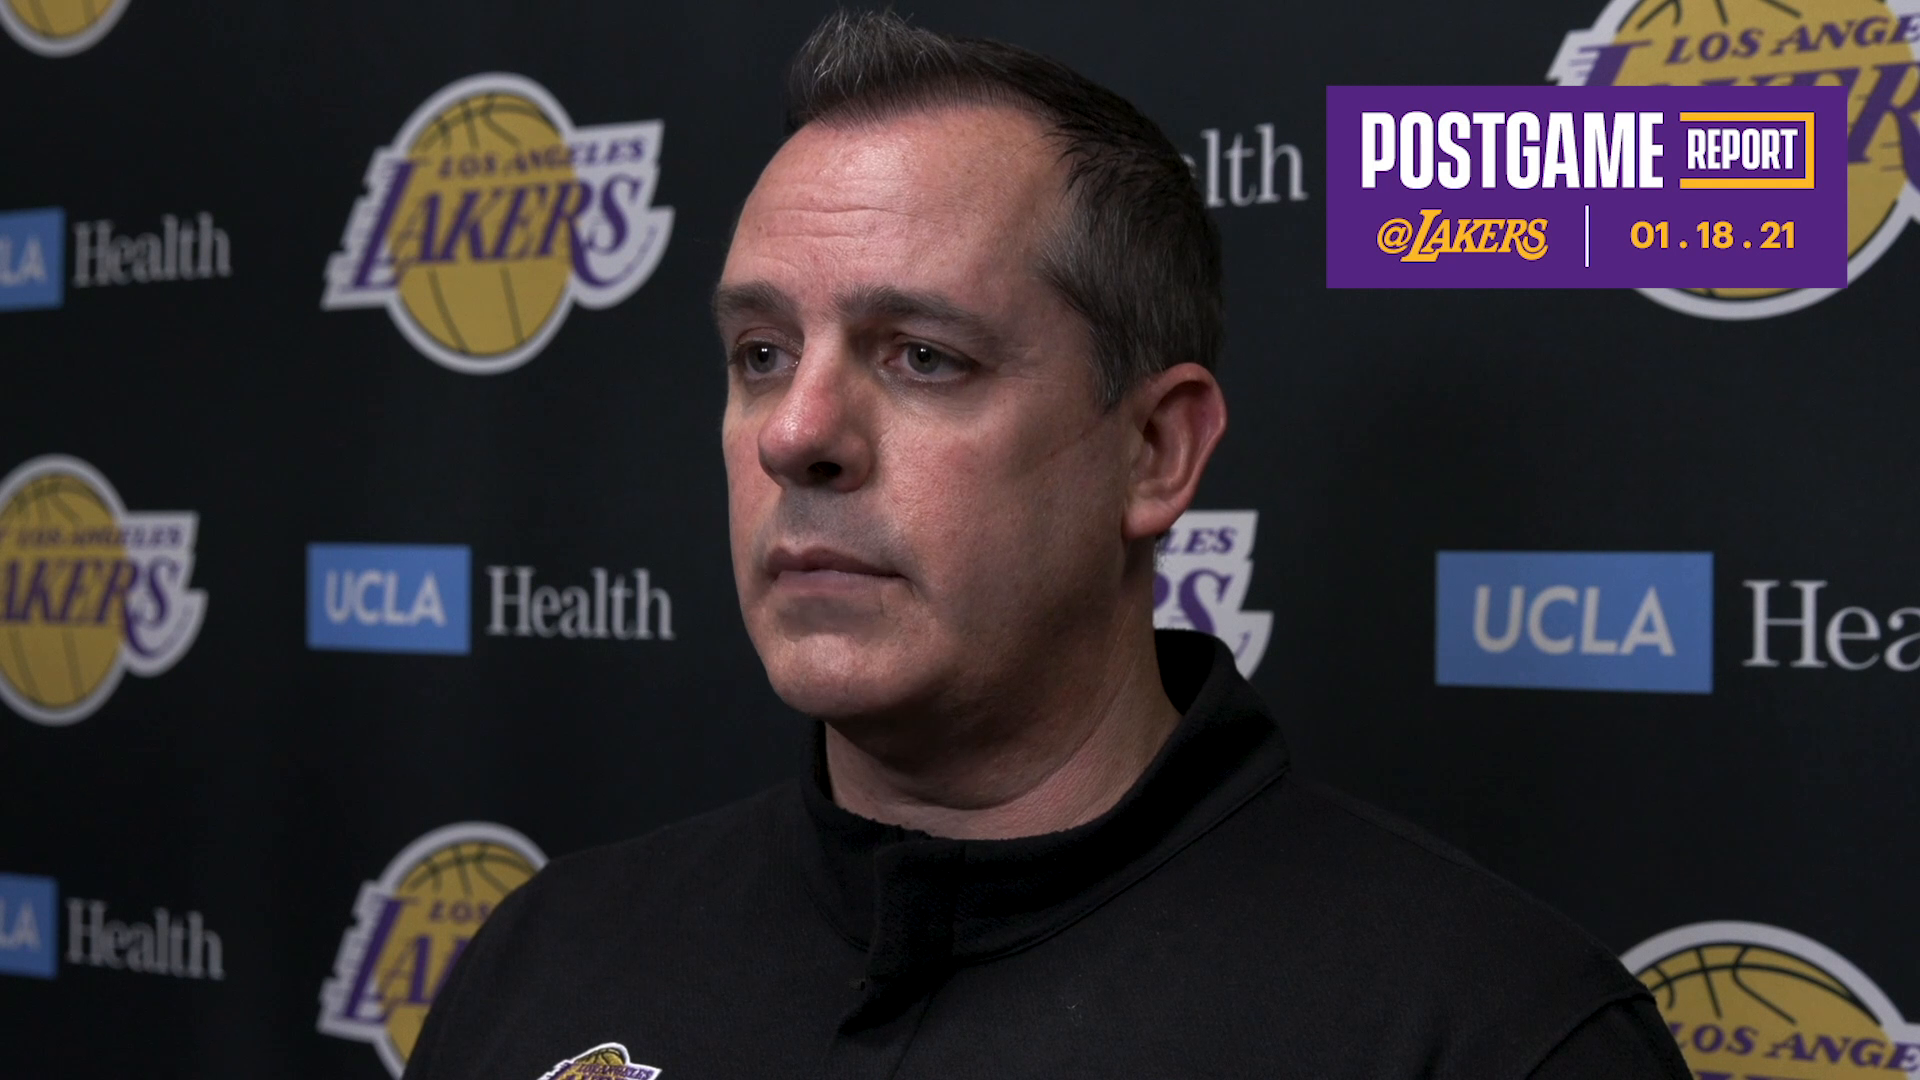 Lakers Postgame: Frank Vogel (01/18/21)